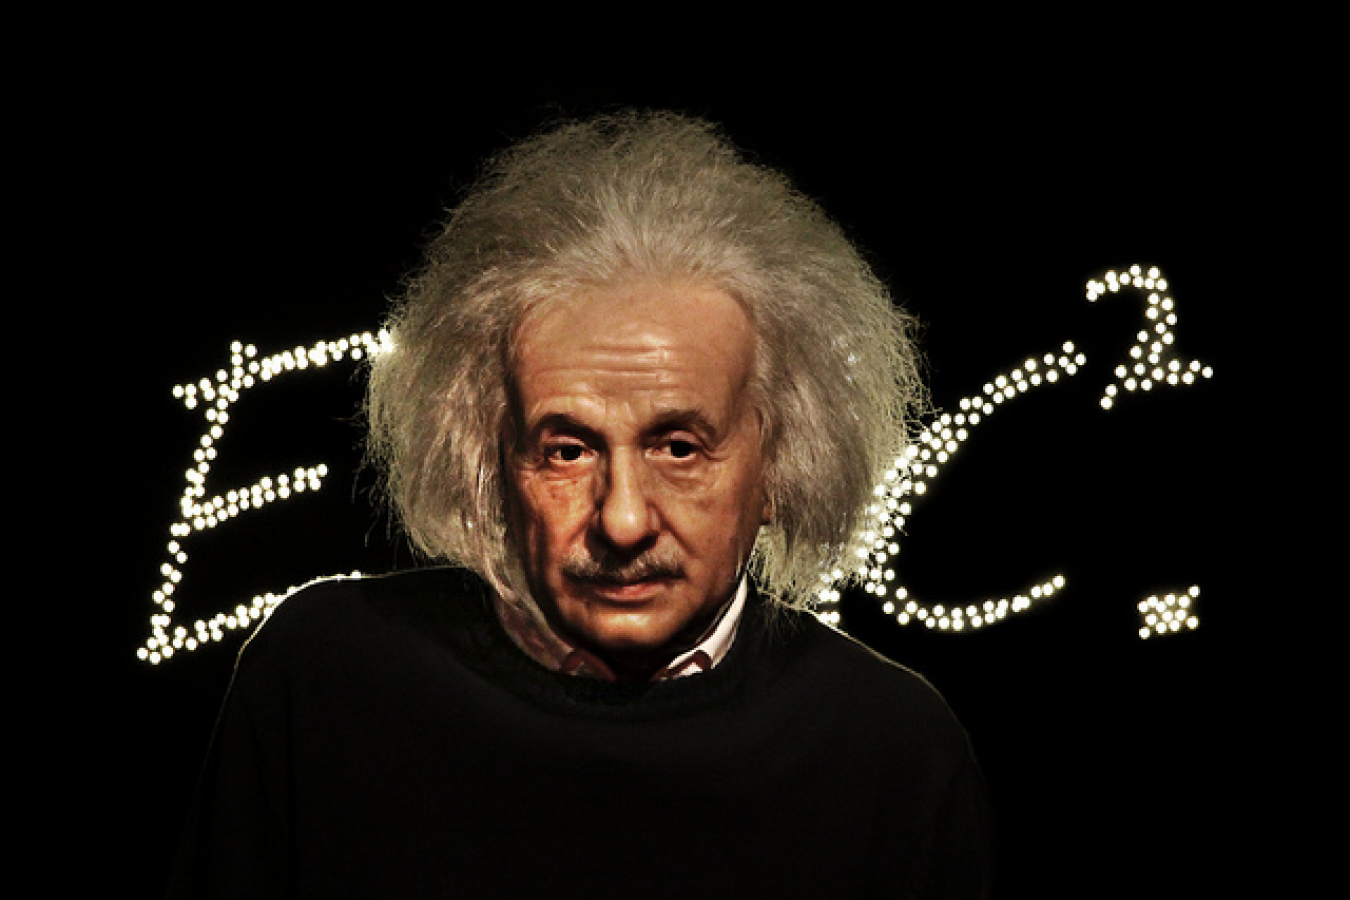 Albert Einstein - E=m*c² One of the most famous immigrants to the US